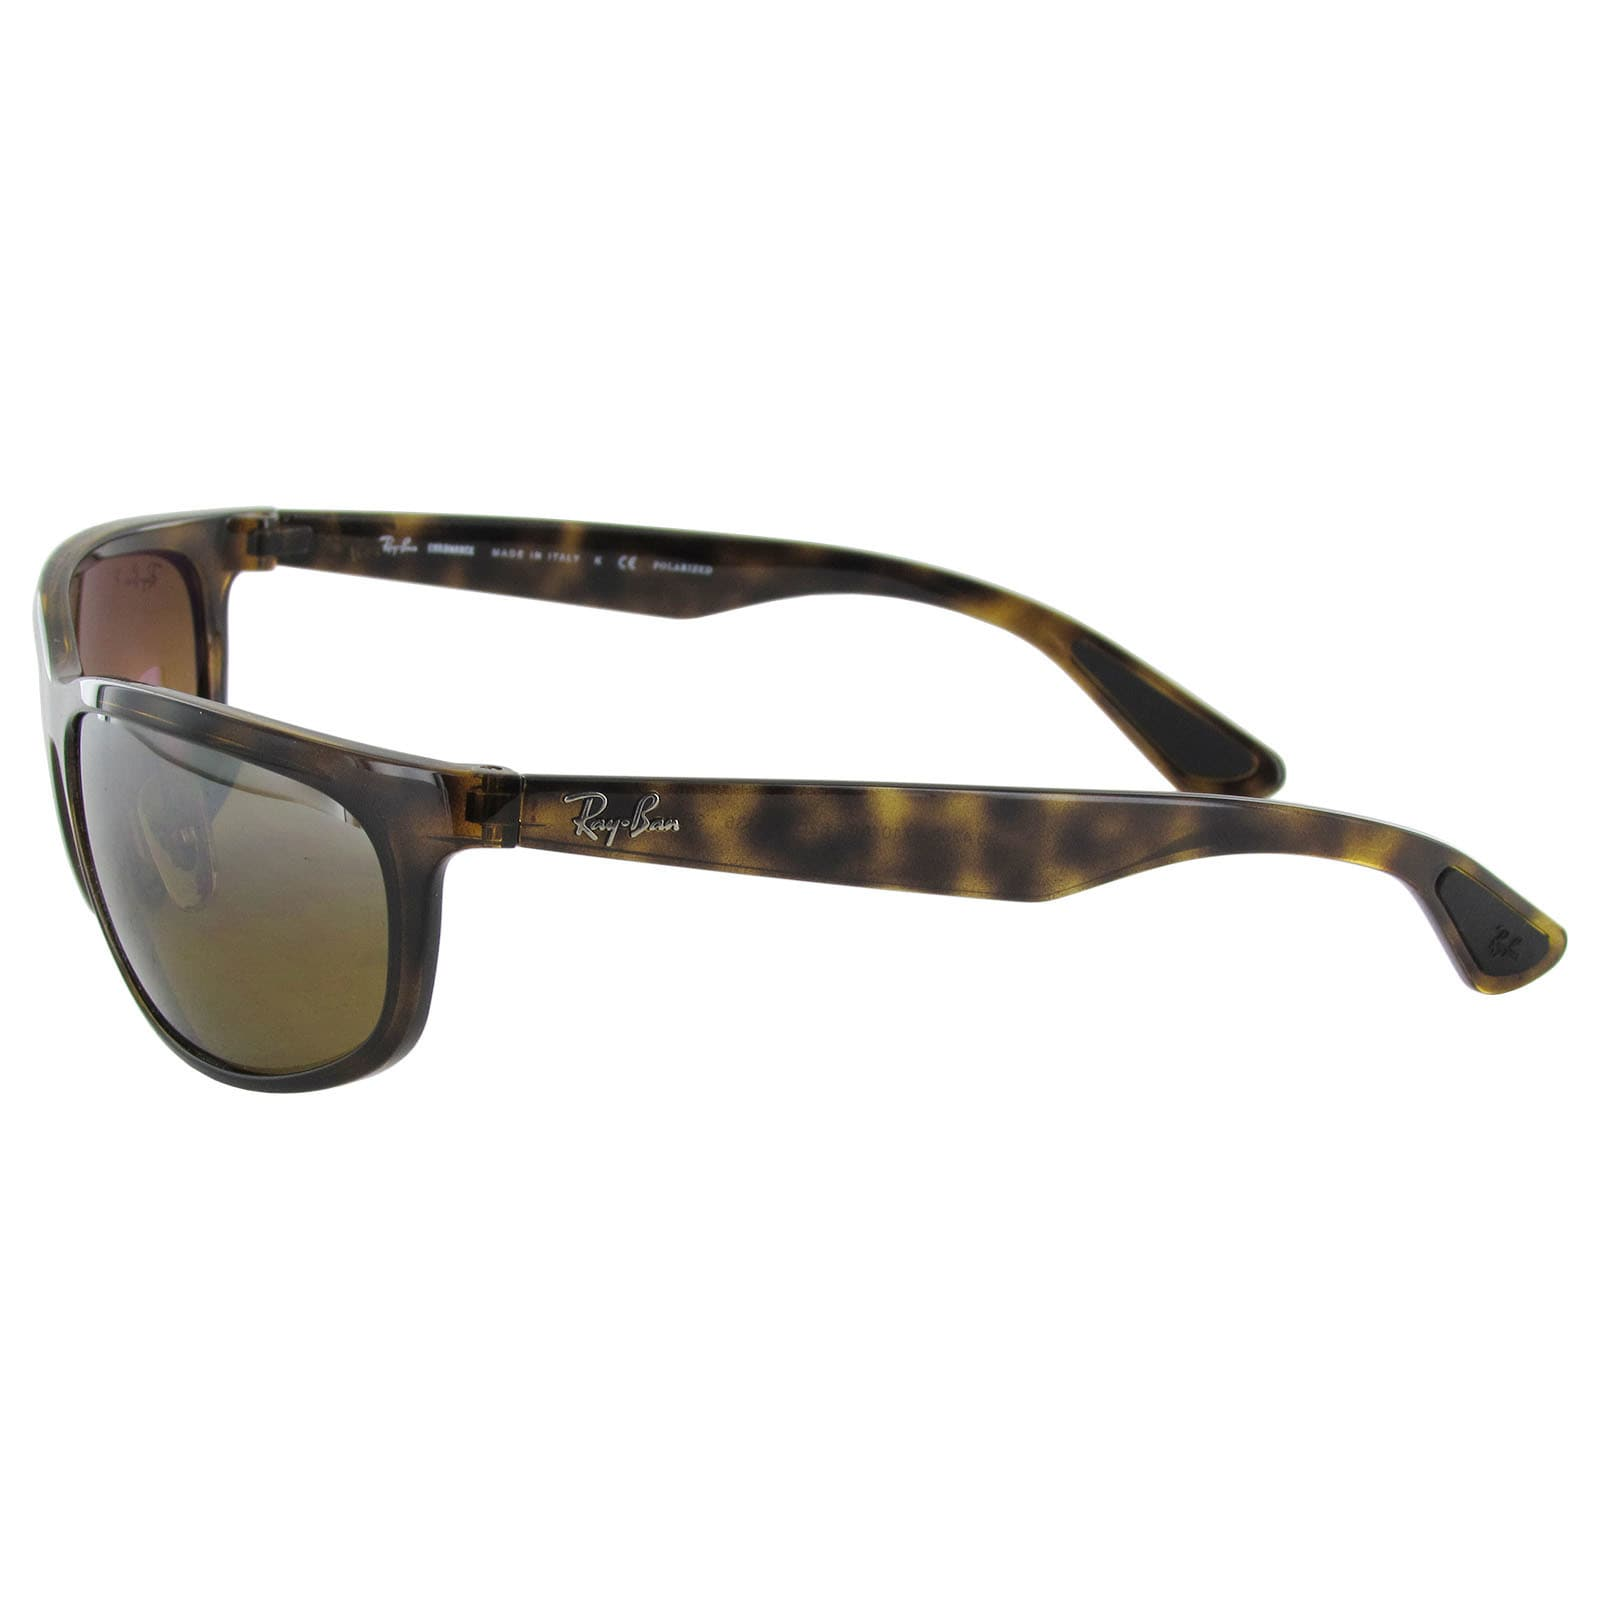 a93b57fa3d5 Shop Ray-Ban Chromance RB4265 Mens Tortoise Frame Brown Mirror Polarized  Lens Sunglasses - Free Shipping Today - Overstock - 16288354